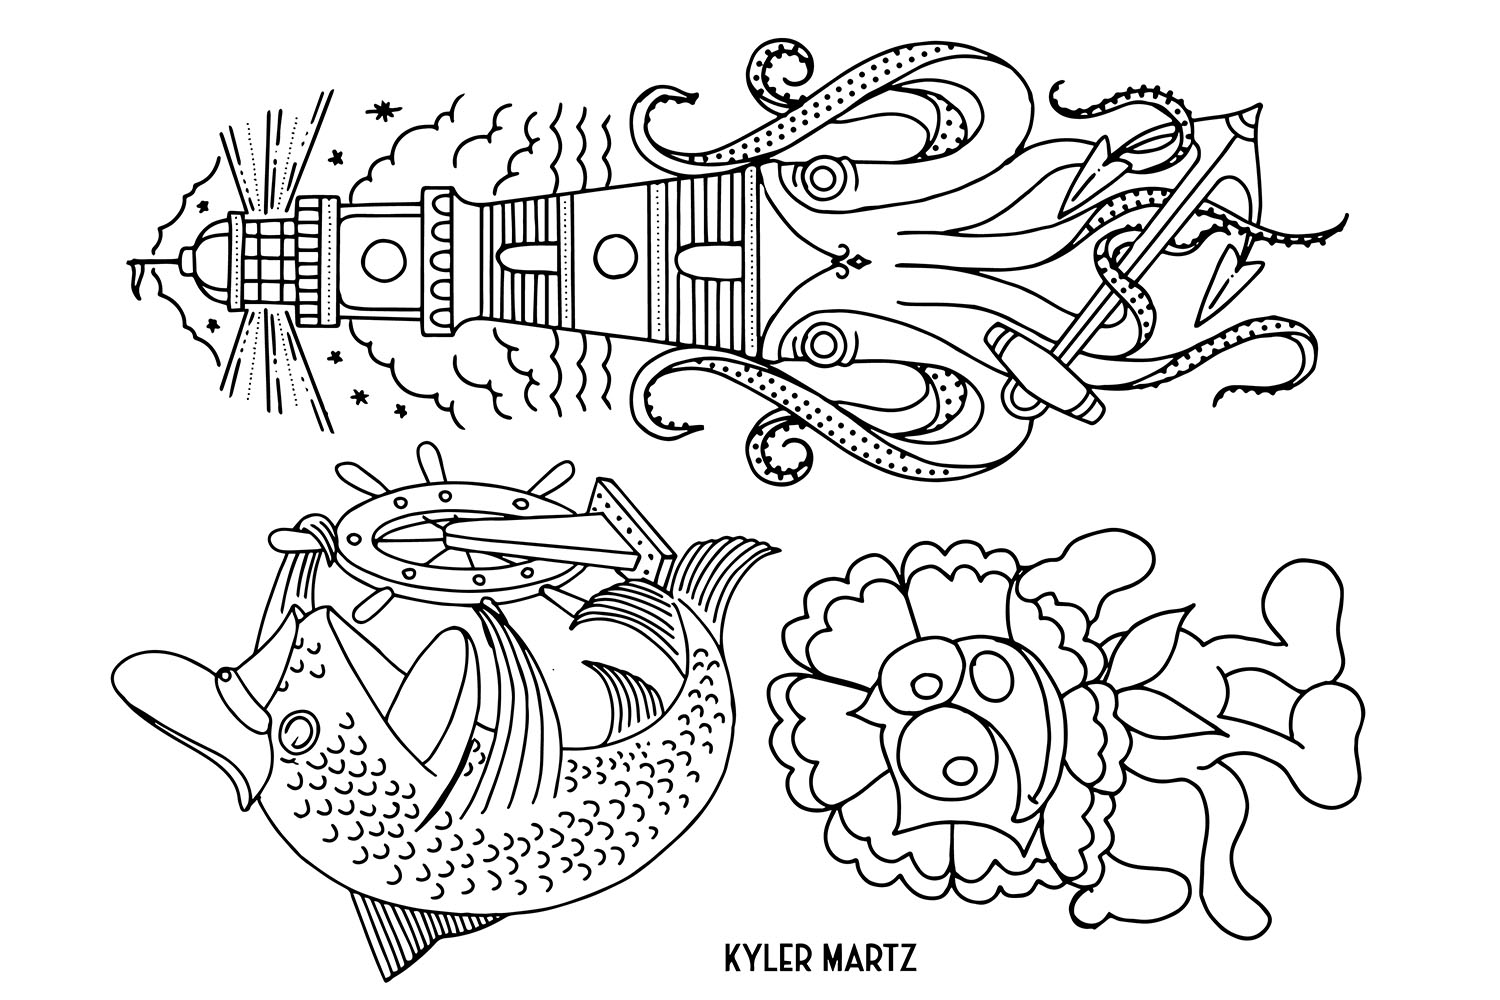 "Whether you're looking for something other than Netflix to do or something to keep your little ones entertained, what better way to pass the time than to color?! Artists in Seattle have created free coloring pages you can download and print right at home! You can not only get to know some local artists but also keep your mind engaged in a different way during quarantine. Pages can be downloaded from{&nbsp;}<a  href=""https://stayinsidethelines.co/"" target=""_blank"">stayinsidethelines.co</a>. Make sure to tag{&nbsp;}<a  href=""https://www.instagram.com/Stayinsidethelinesseattle/"" target=""_blank"">@StayInsideTheLinesSeattle{&nbsp;}</a>and use{&nbsp;}<a  href=""https://www.instagram.com/explore/tags/stayinsidethelinessea/"" target=""_blank"">#STAYINSIDETheLinesSEA{&nbsp;}</a>when posting to social media! (Image:{&nbsp;}@KYLERMARTZ)"